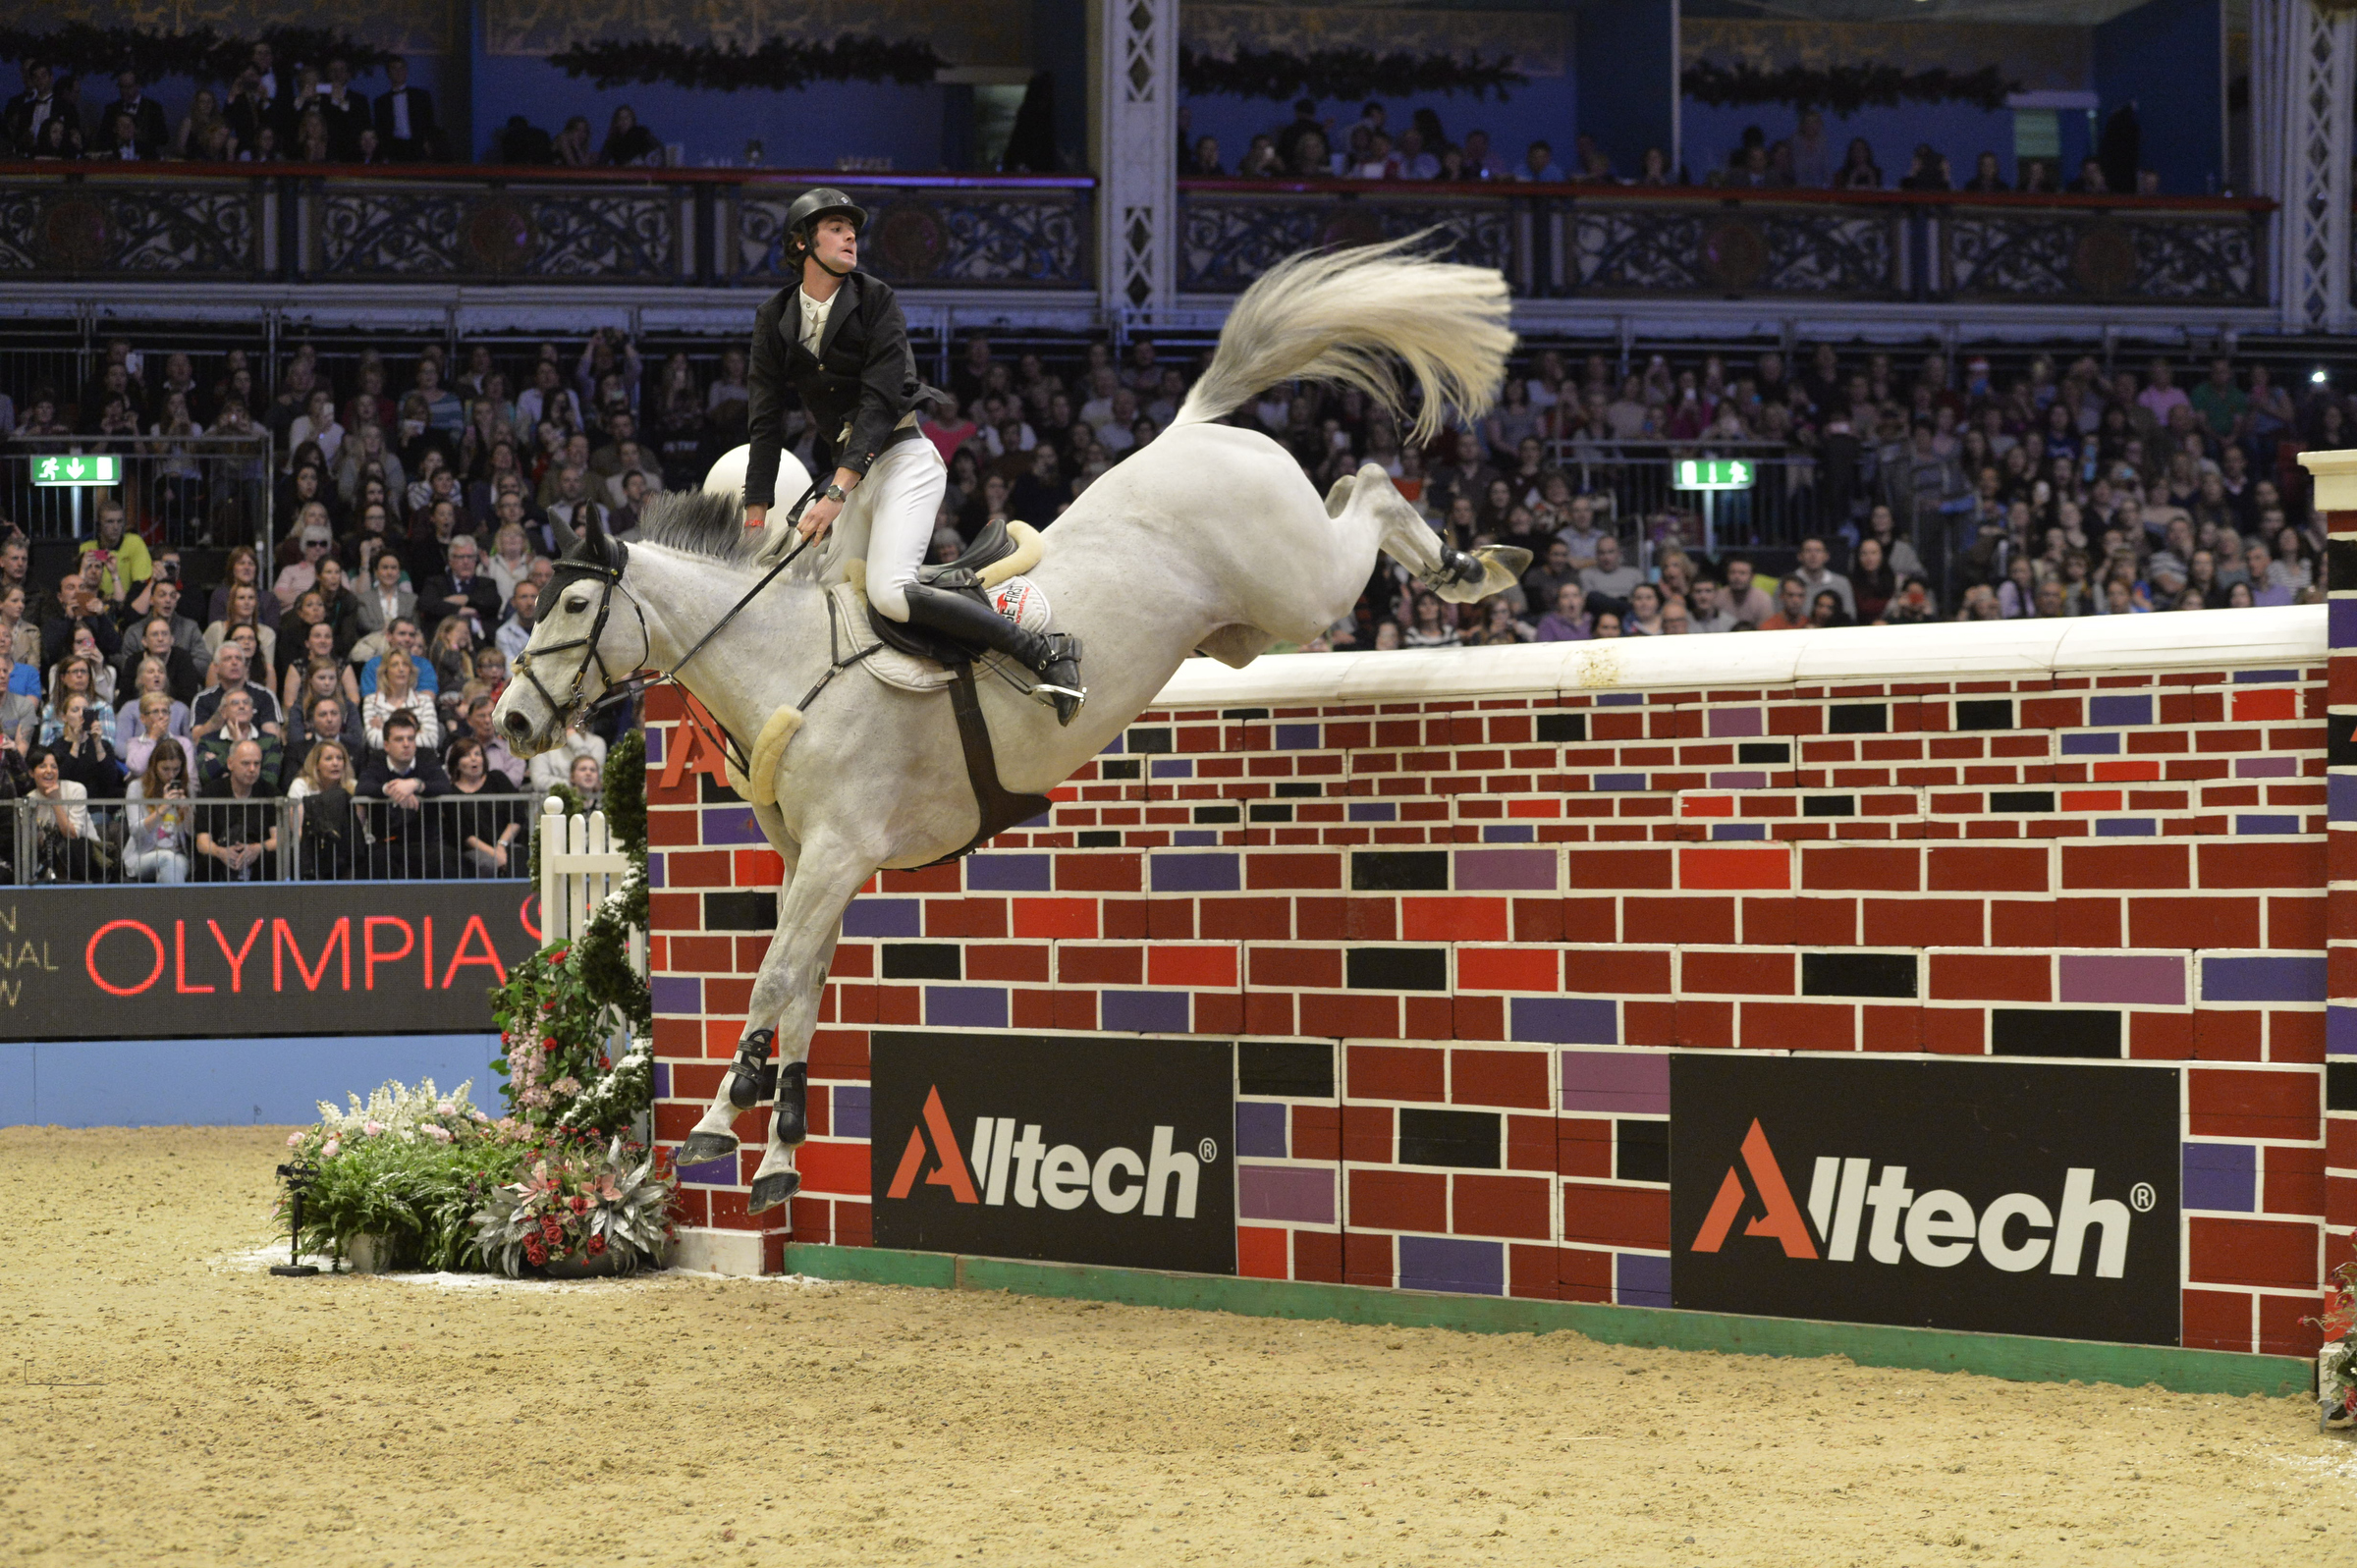 Olympia: The Alltech Christmas Puissance 2015